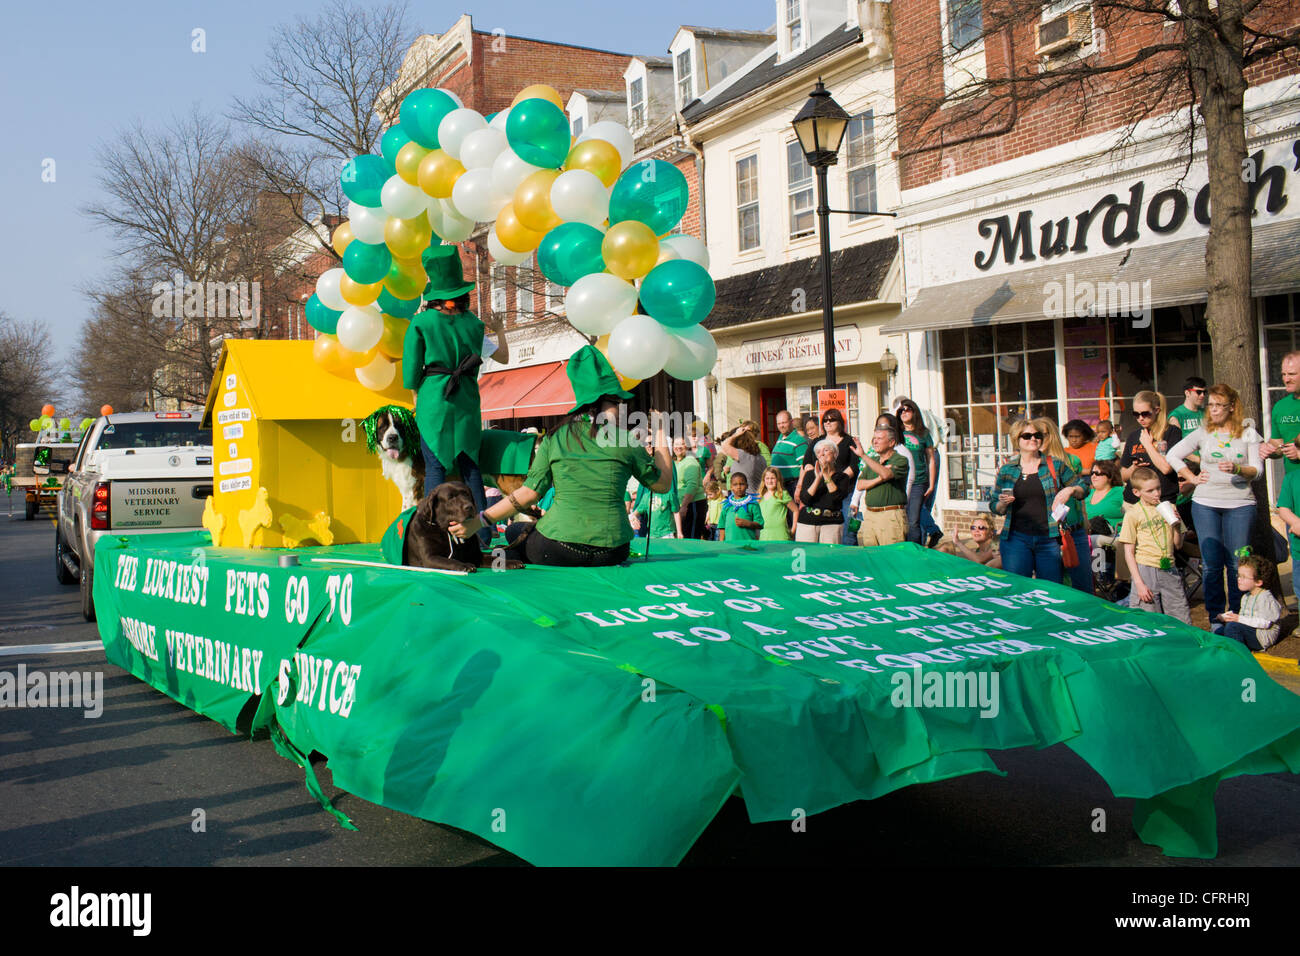 St. Patrick's Day parade, Easton, Maryland, Talbot County, Eastern Shore - Stock Image